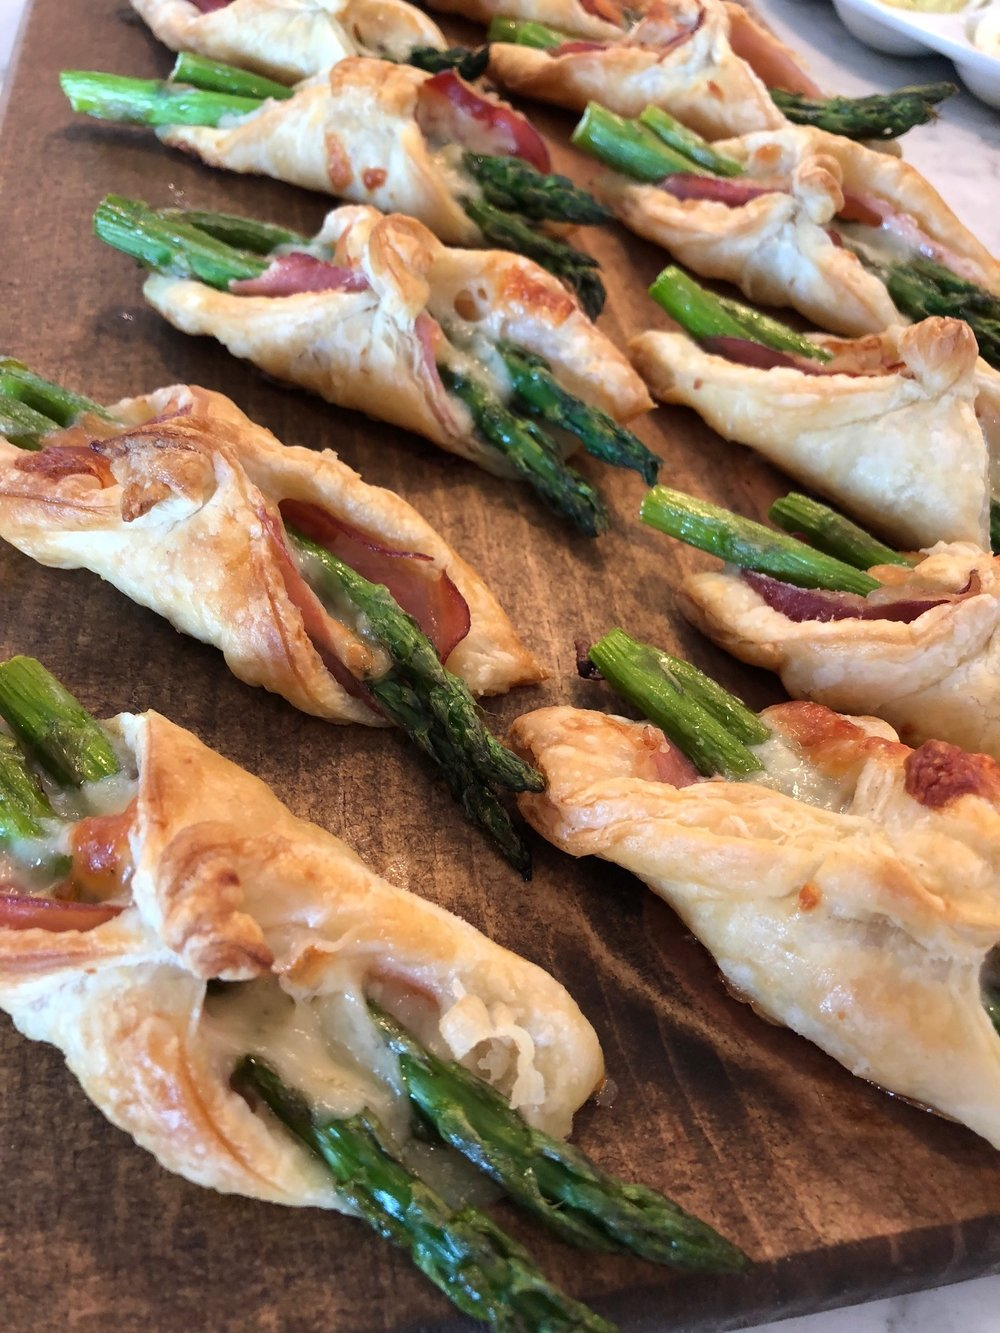 Asparagus puff pastry Parcels with prosciutto and Parmesan